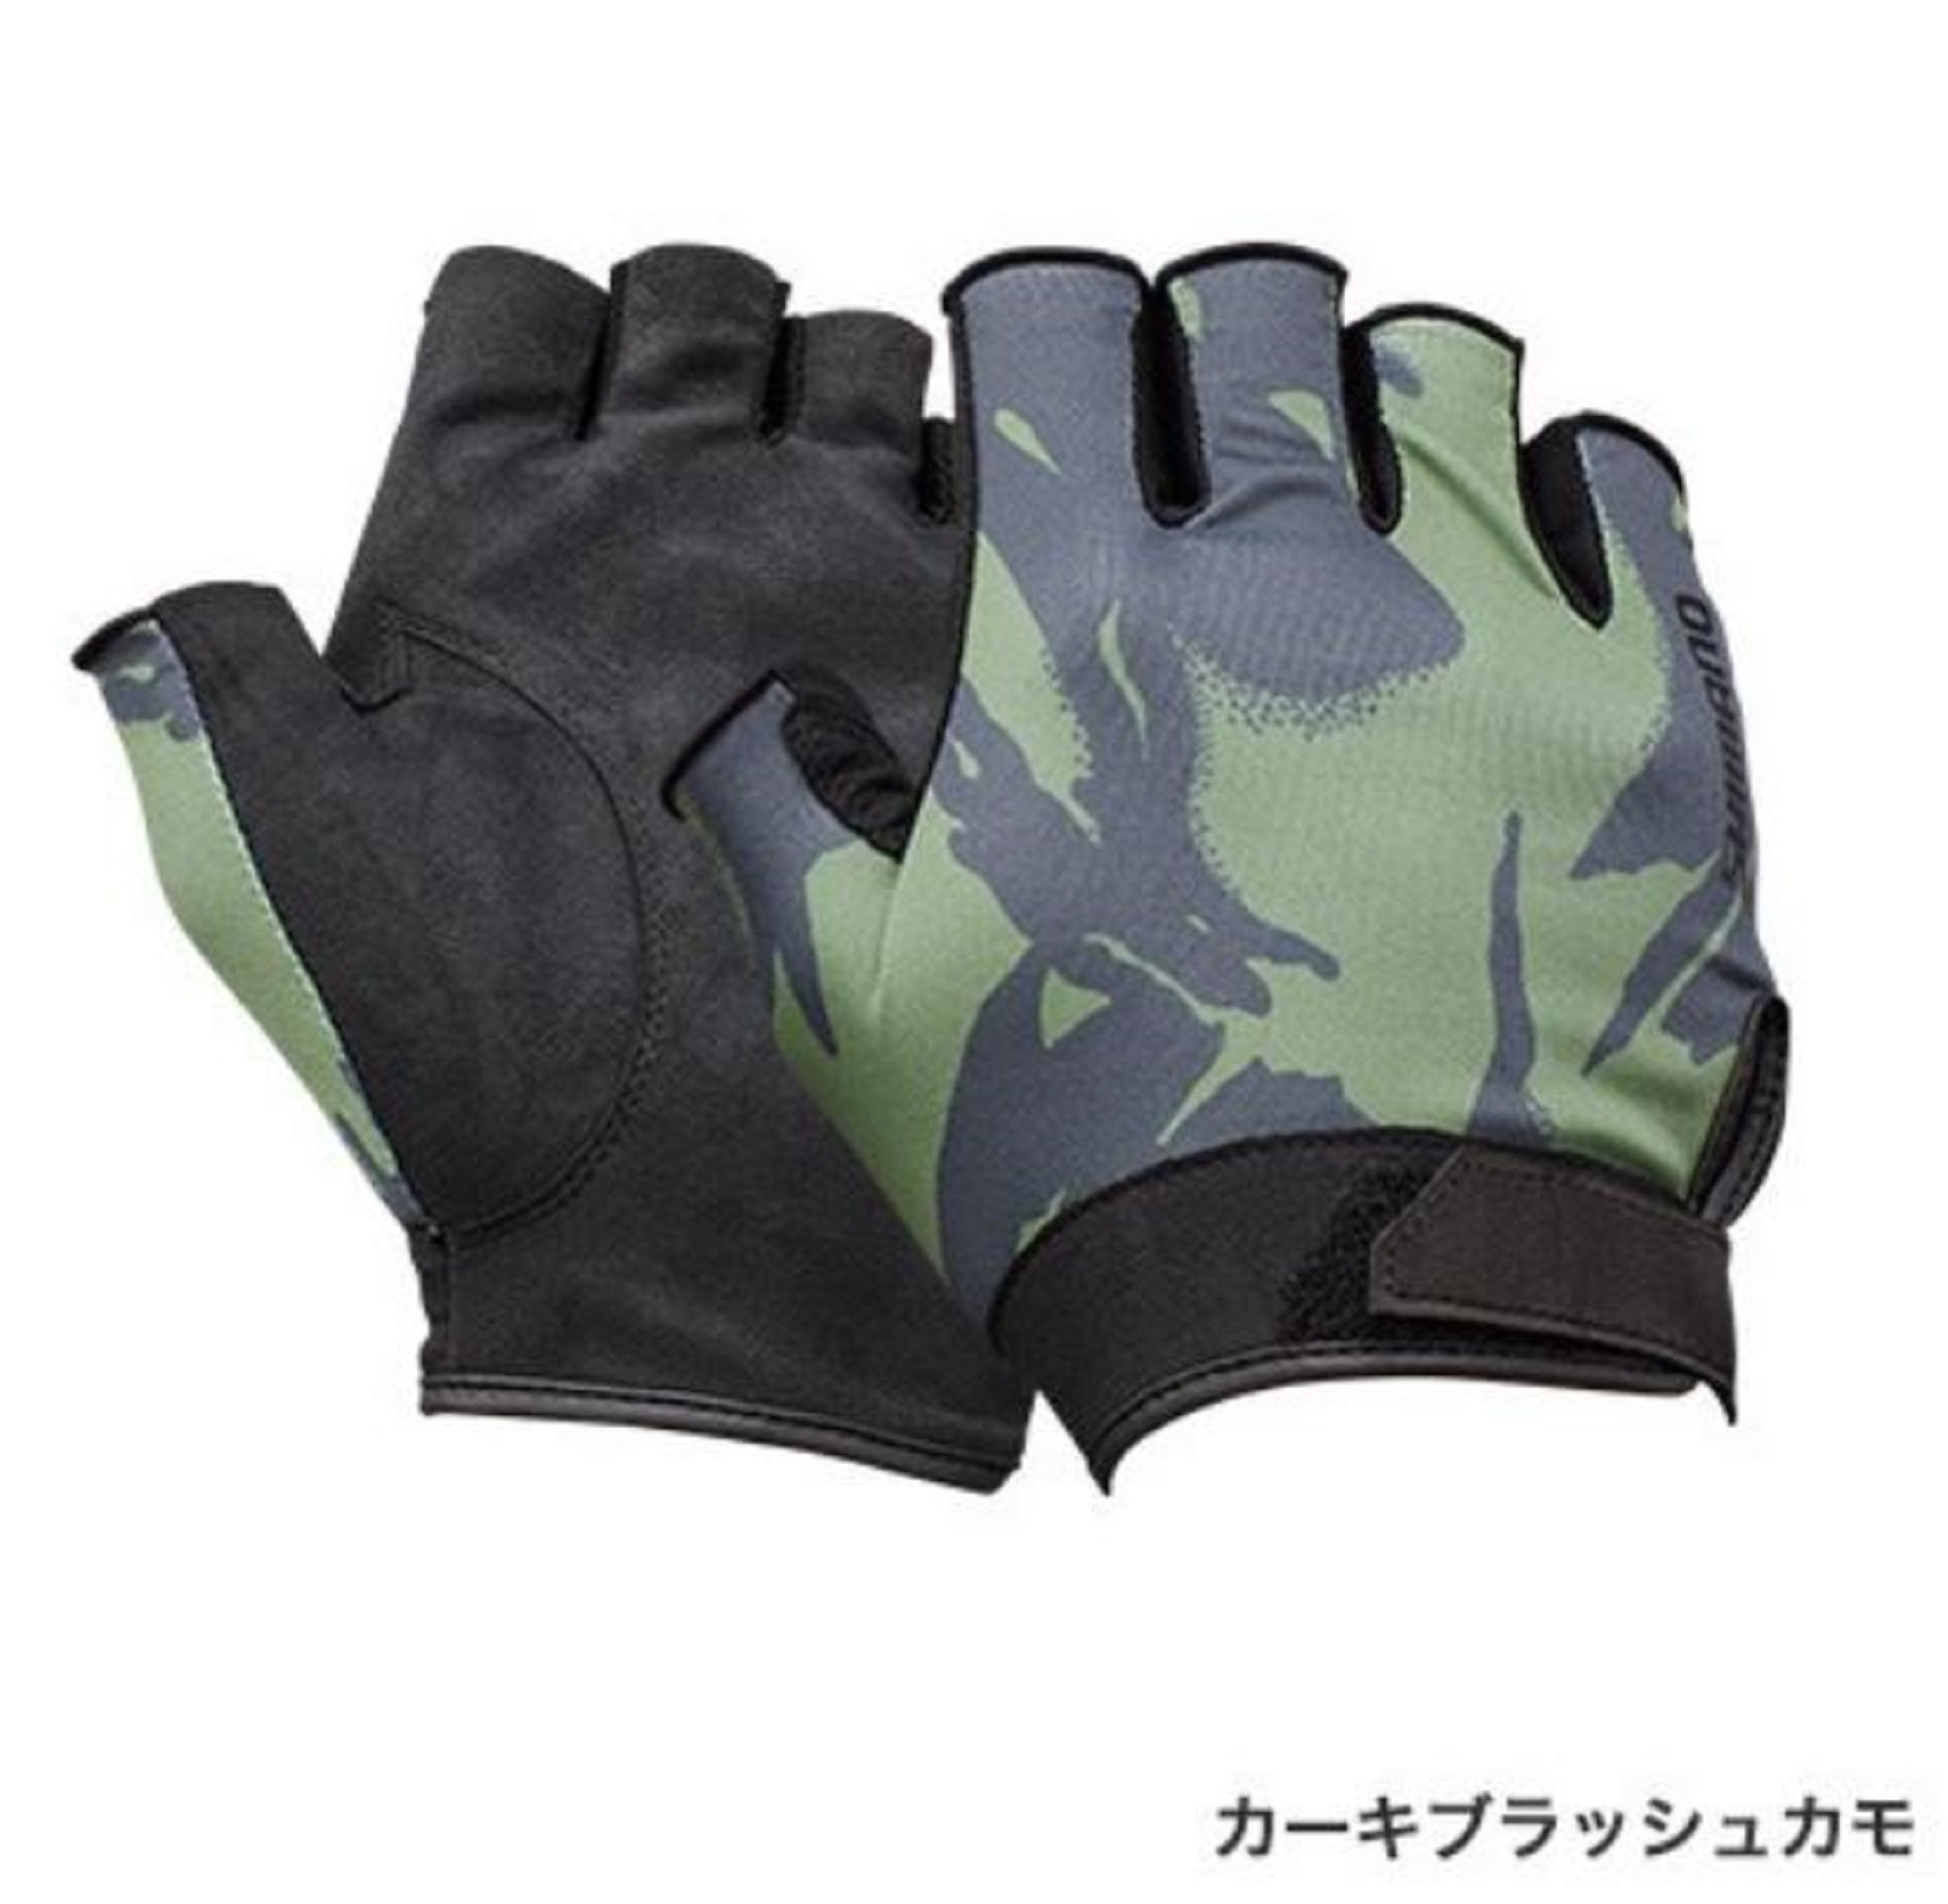 Shimano GL-012T Gloves Casting 5 Fingerless Green Camo Size XL 669377